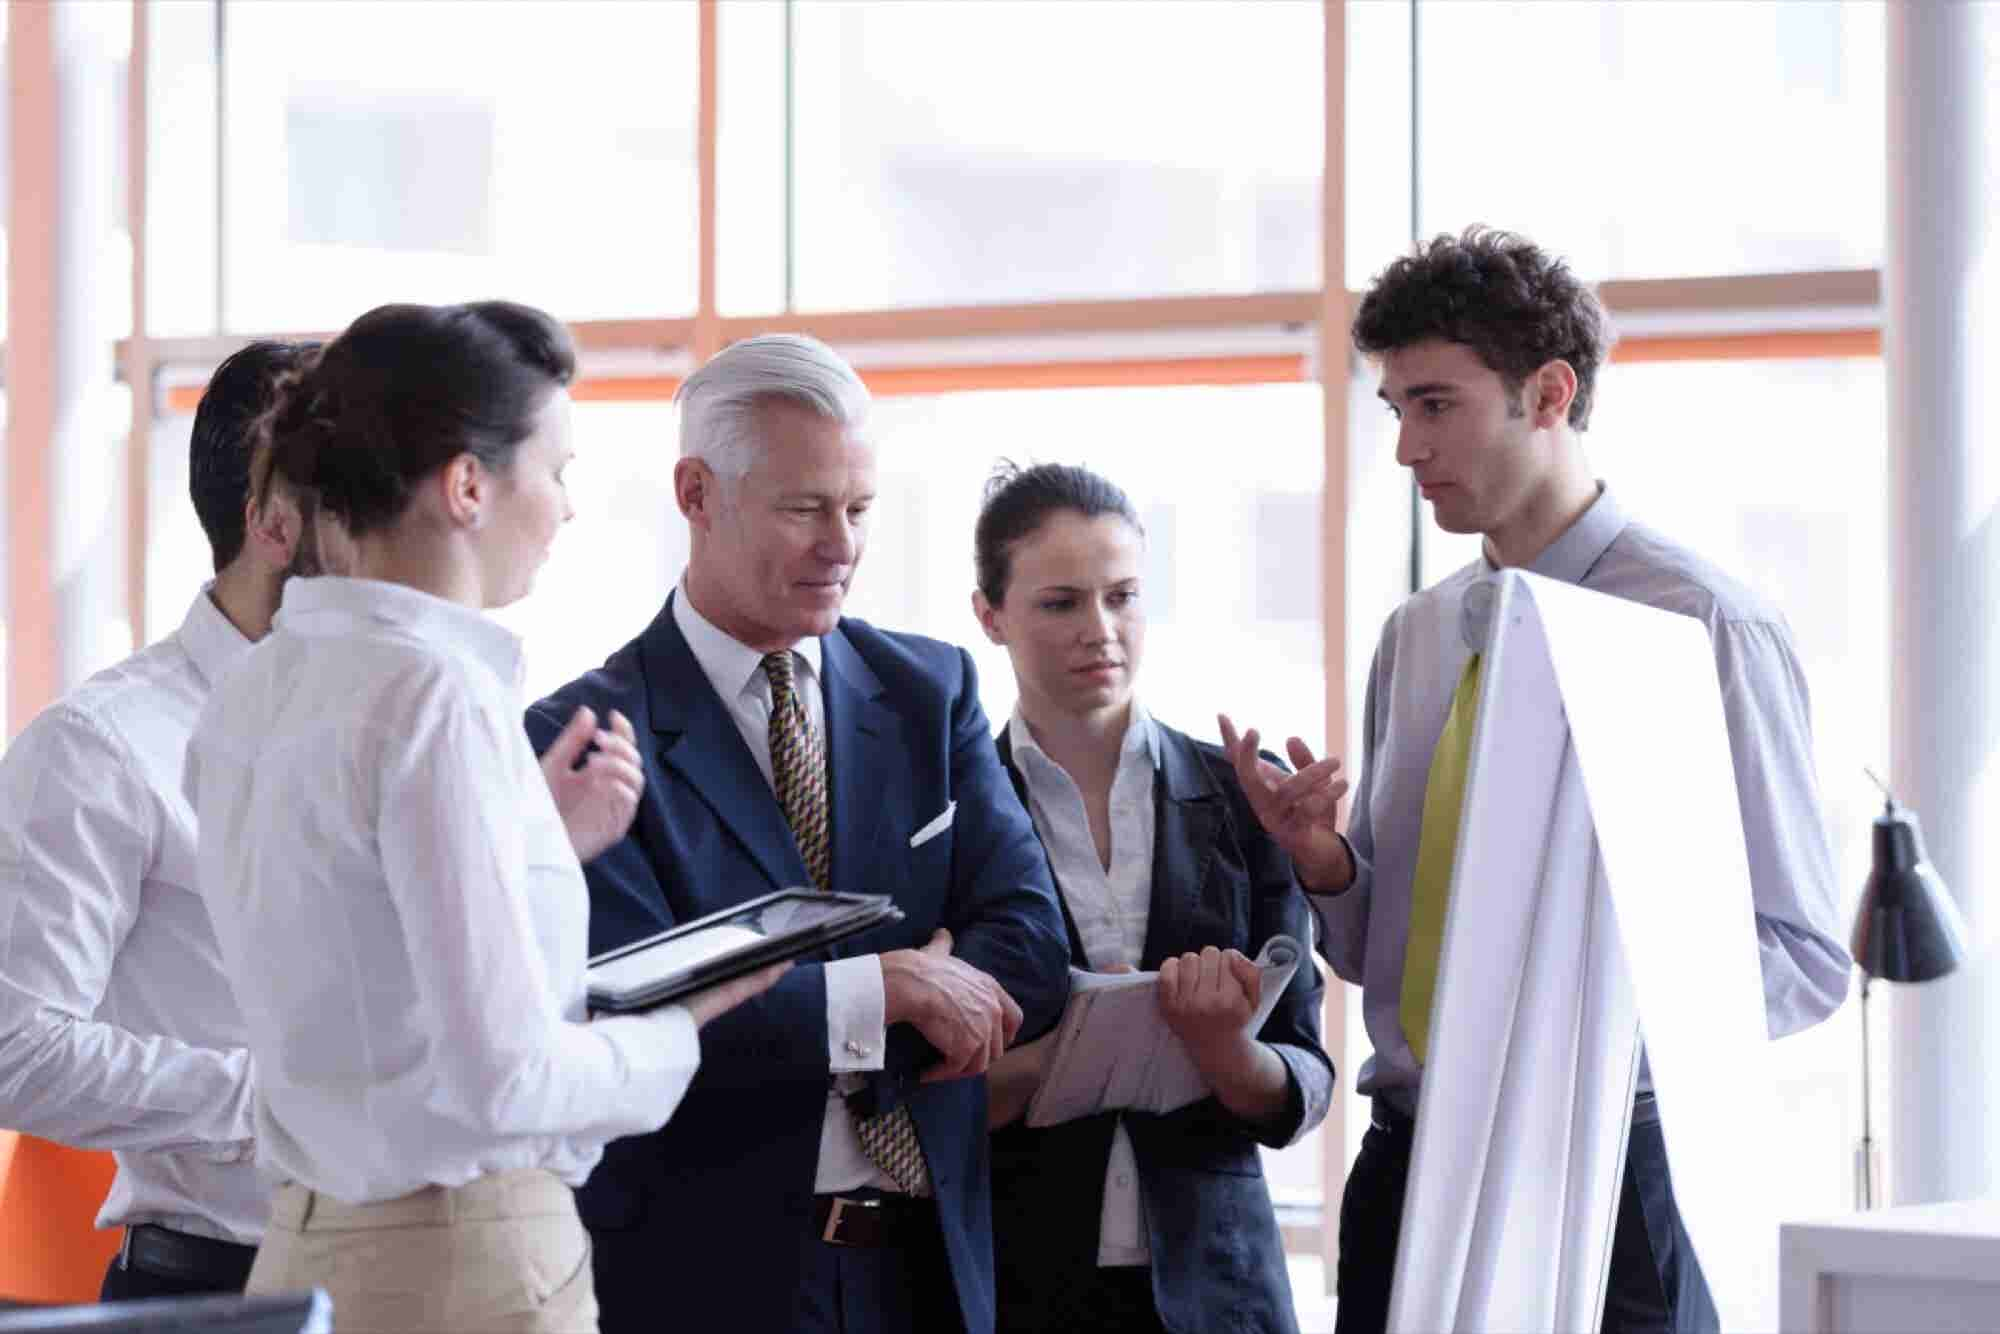 Top Seven Questions that Investors Ask Start-ups & How to Handle Them